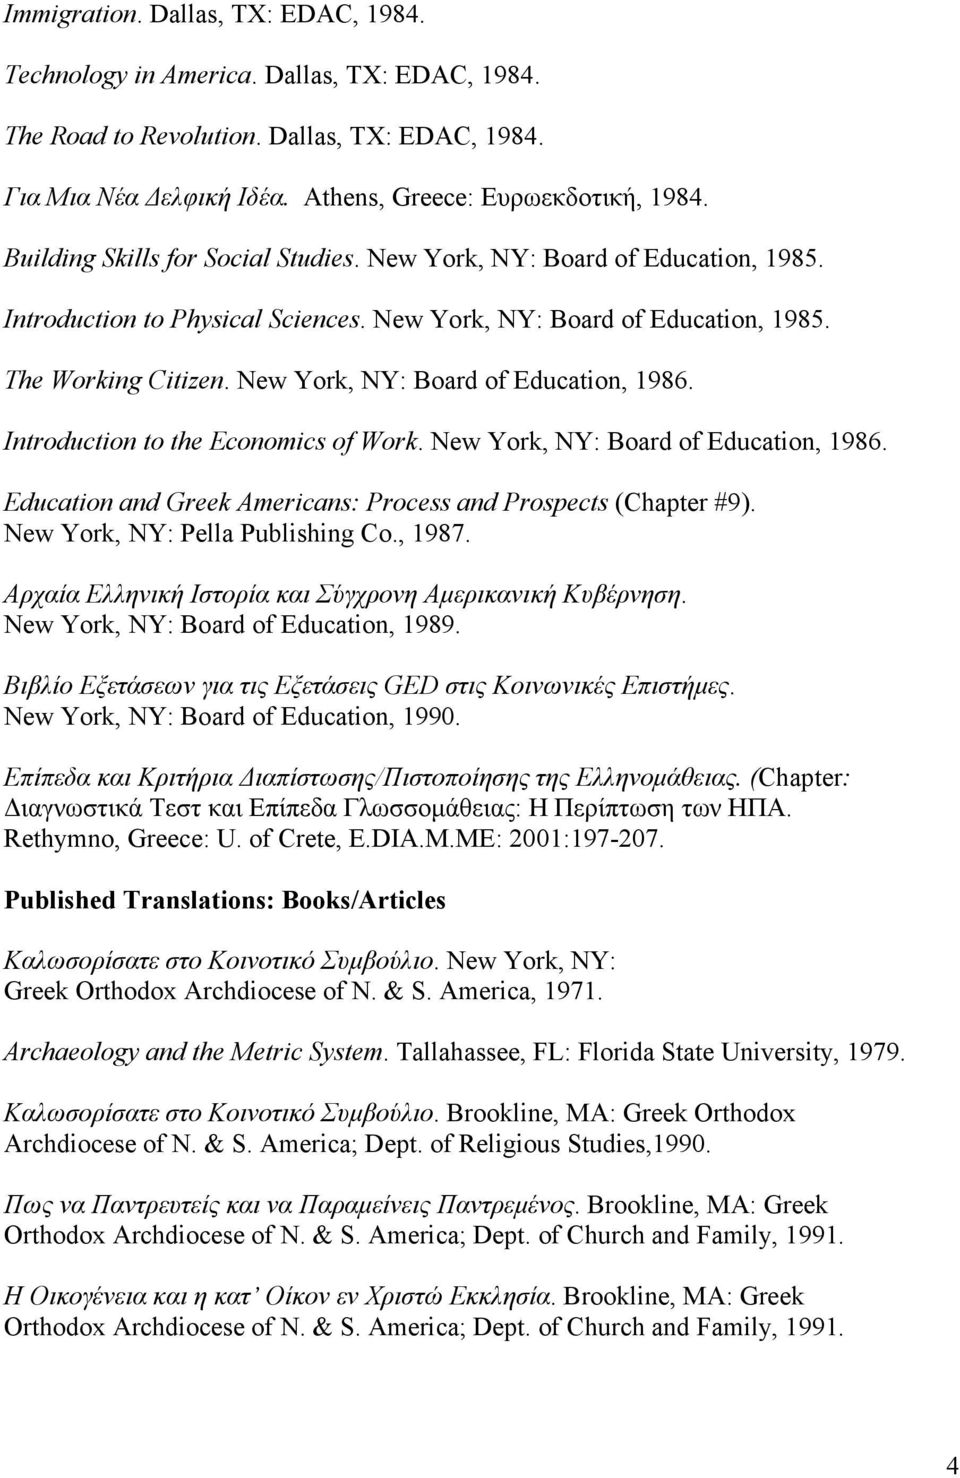 New York, NY: Board of Education, 1986. Introduction to the Economics of Work. New York, NY: Board of Education, 1986. Education and Greek Americans: Process and Prospects (Chapter #9).